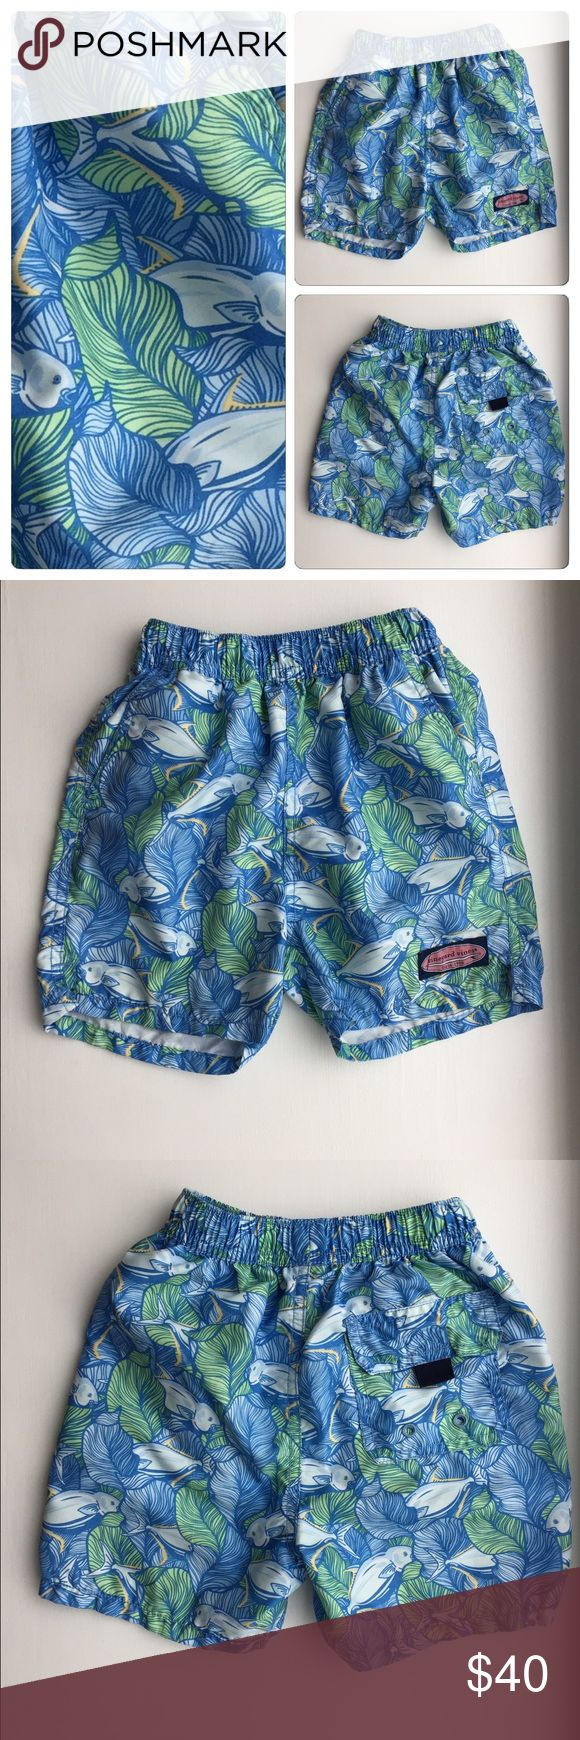 Vineyard Vines Swim Trunks Adorable, preppy VV fish swim trunks! Green, blue, white and yellow pattern. Elastic waistband, mesh underwear and drawstring inside of trunks to tighten shorts. In excellent condition! Vineyard Vines Swim Swim Trunks